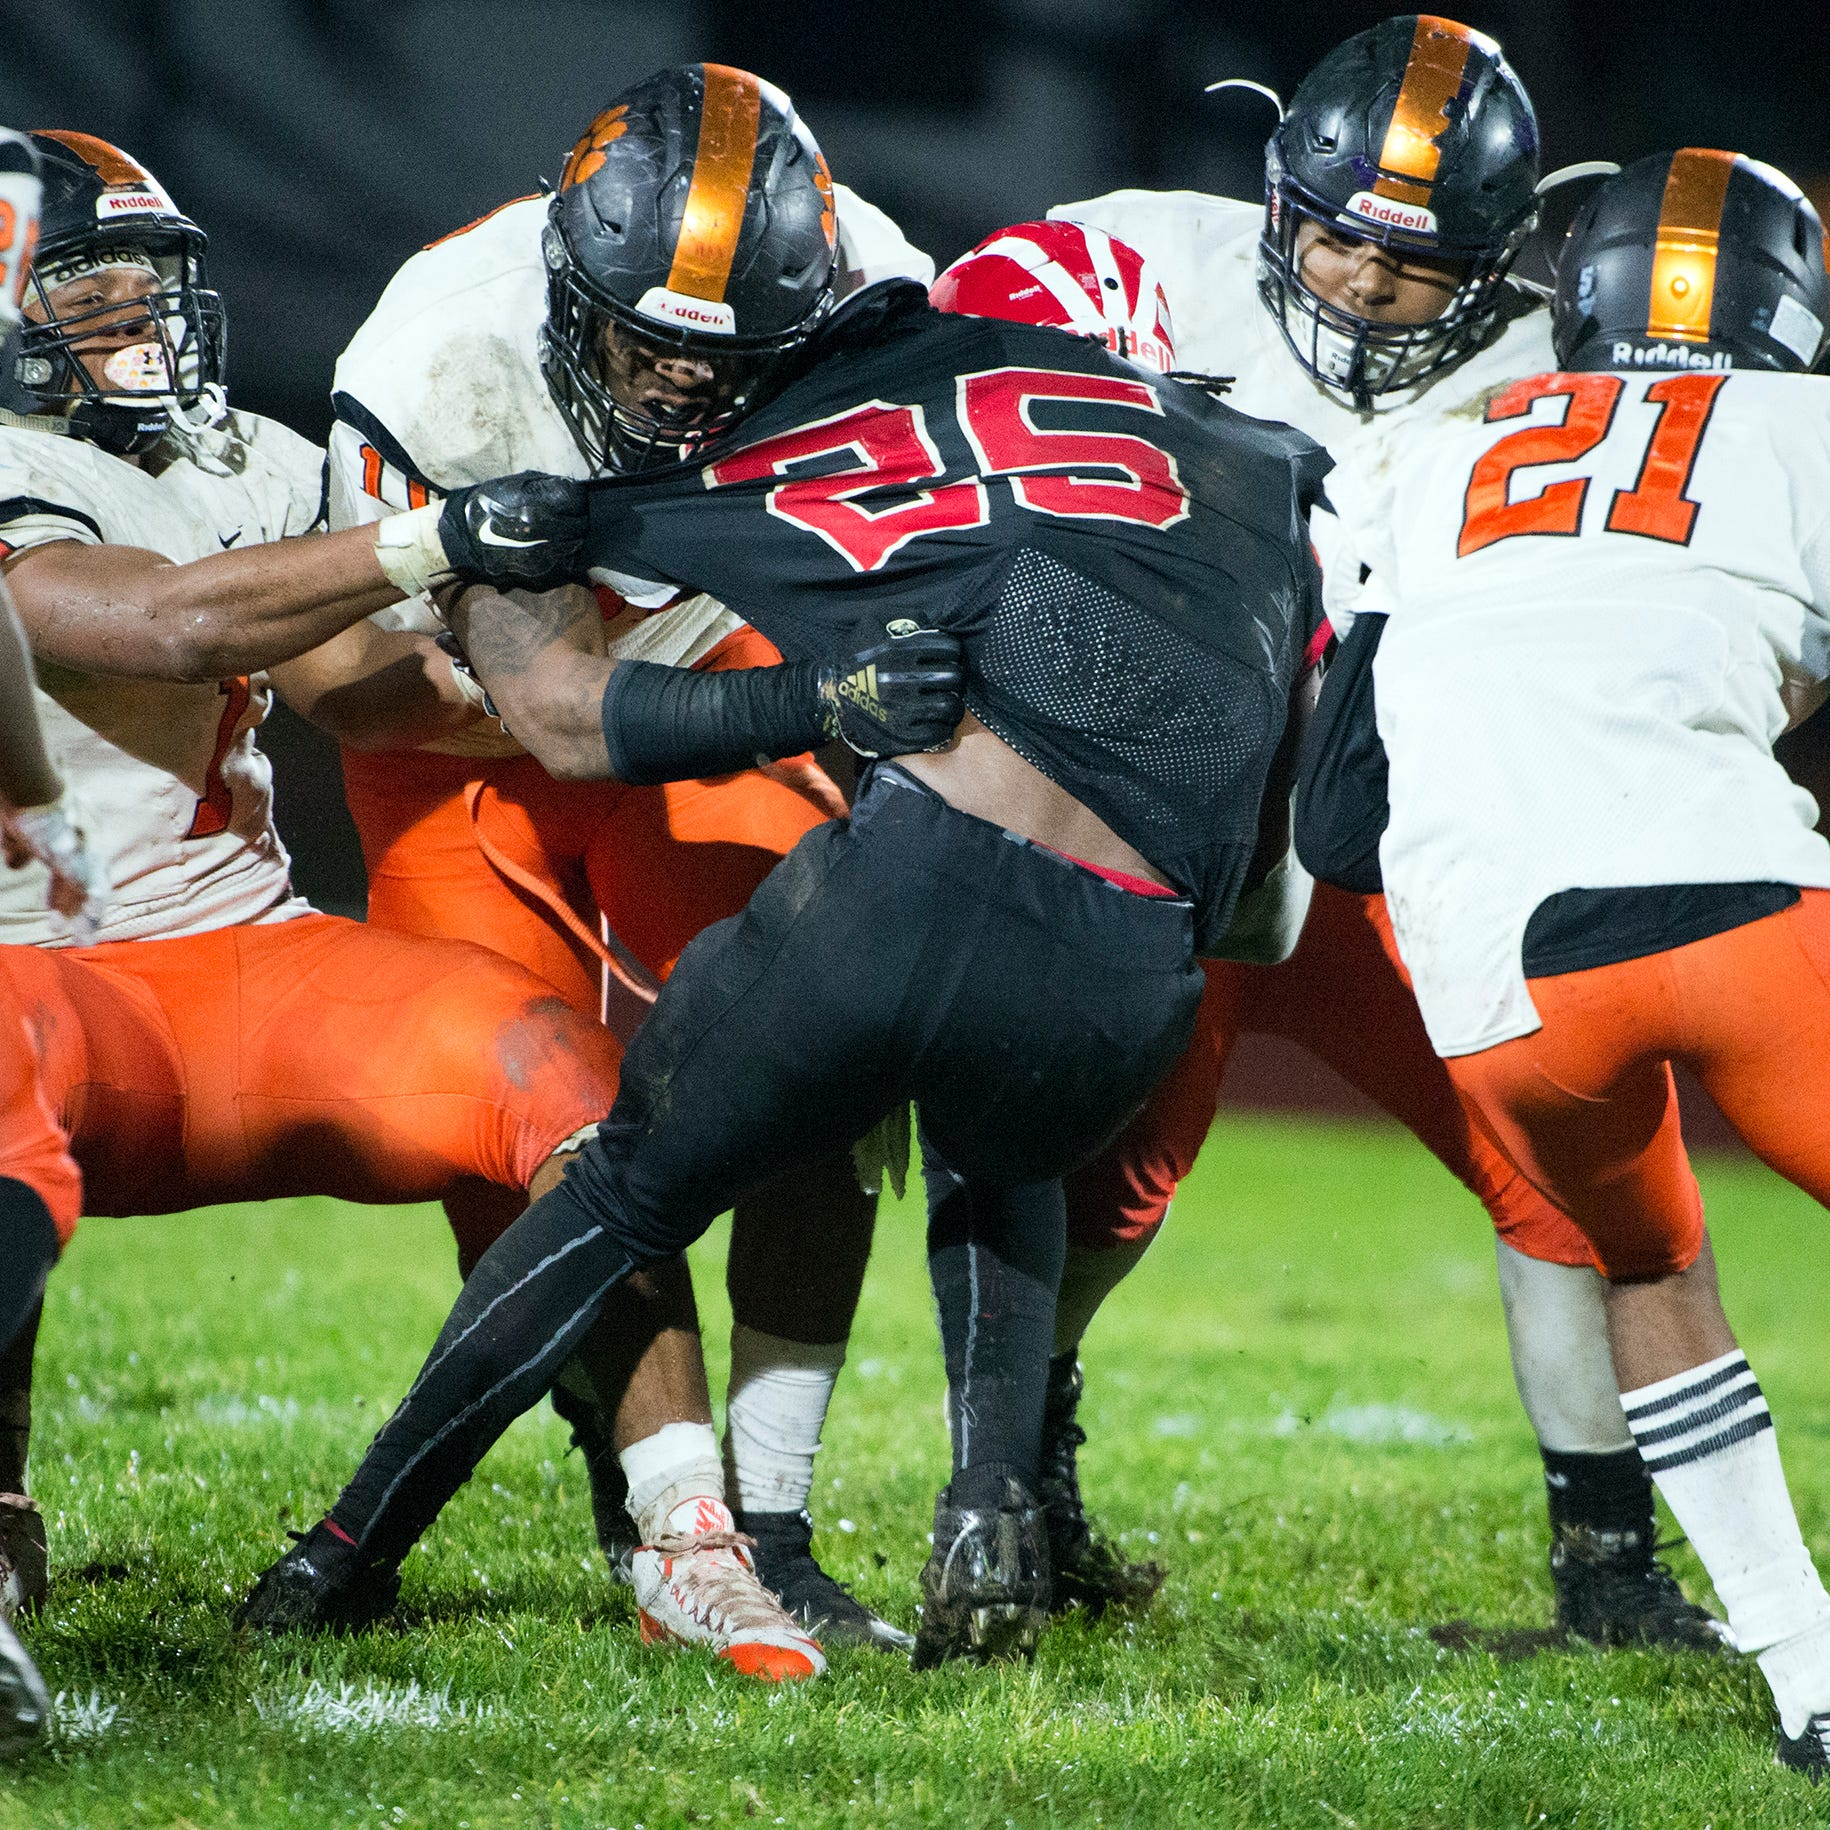 South Jersey football: Woodrow Wilson runs over Delsea to reach sectional final